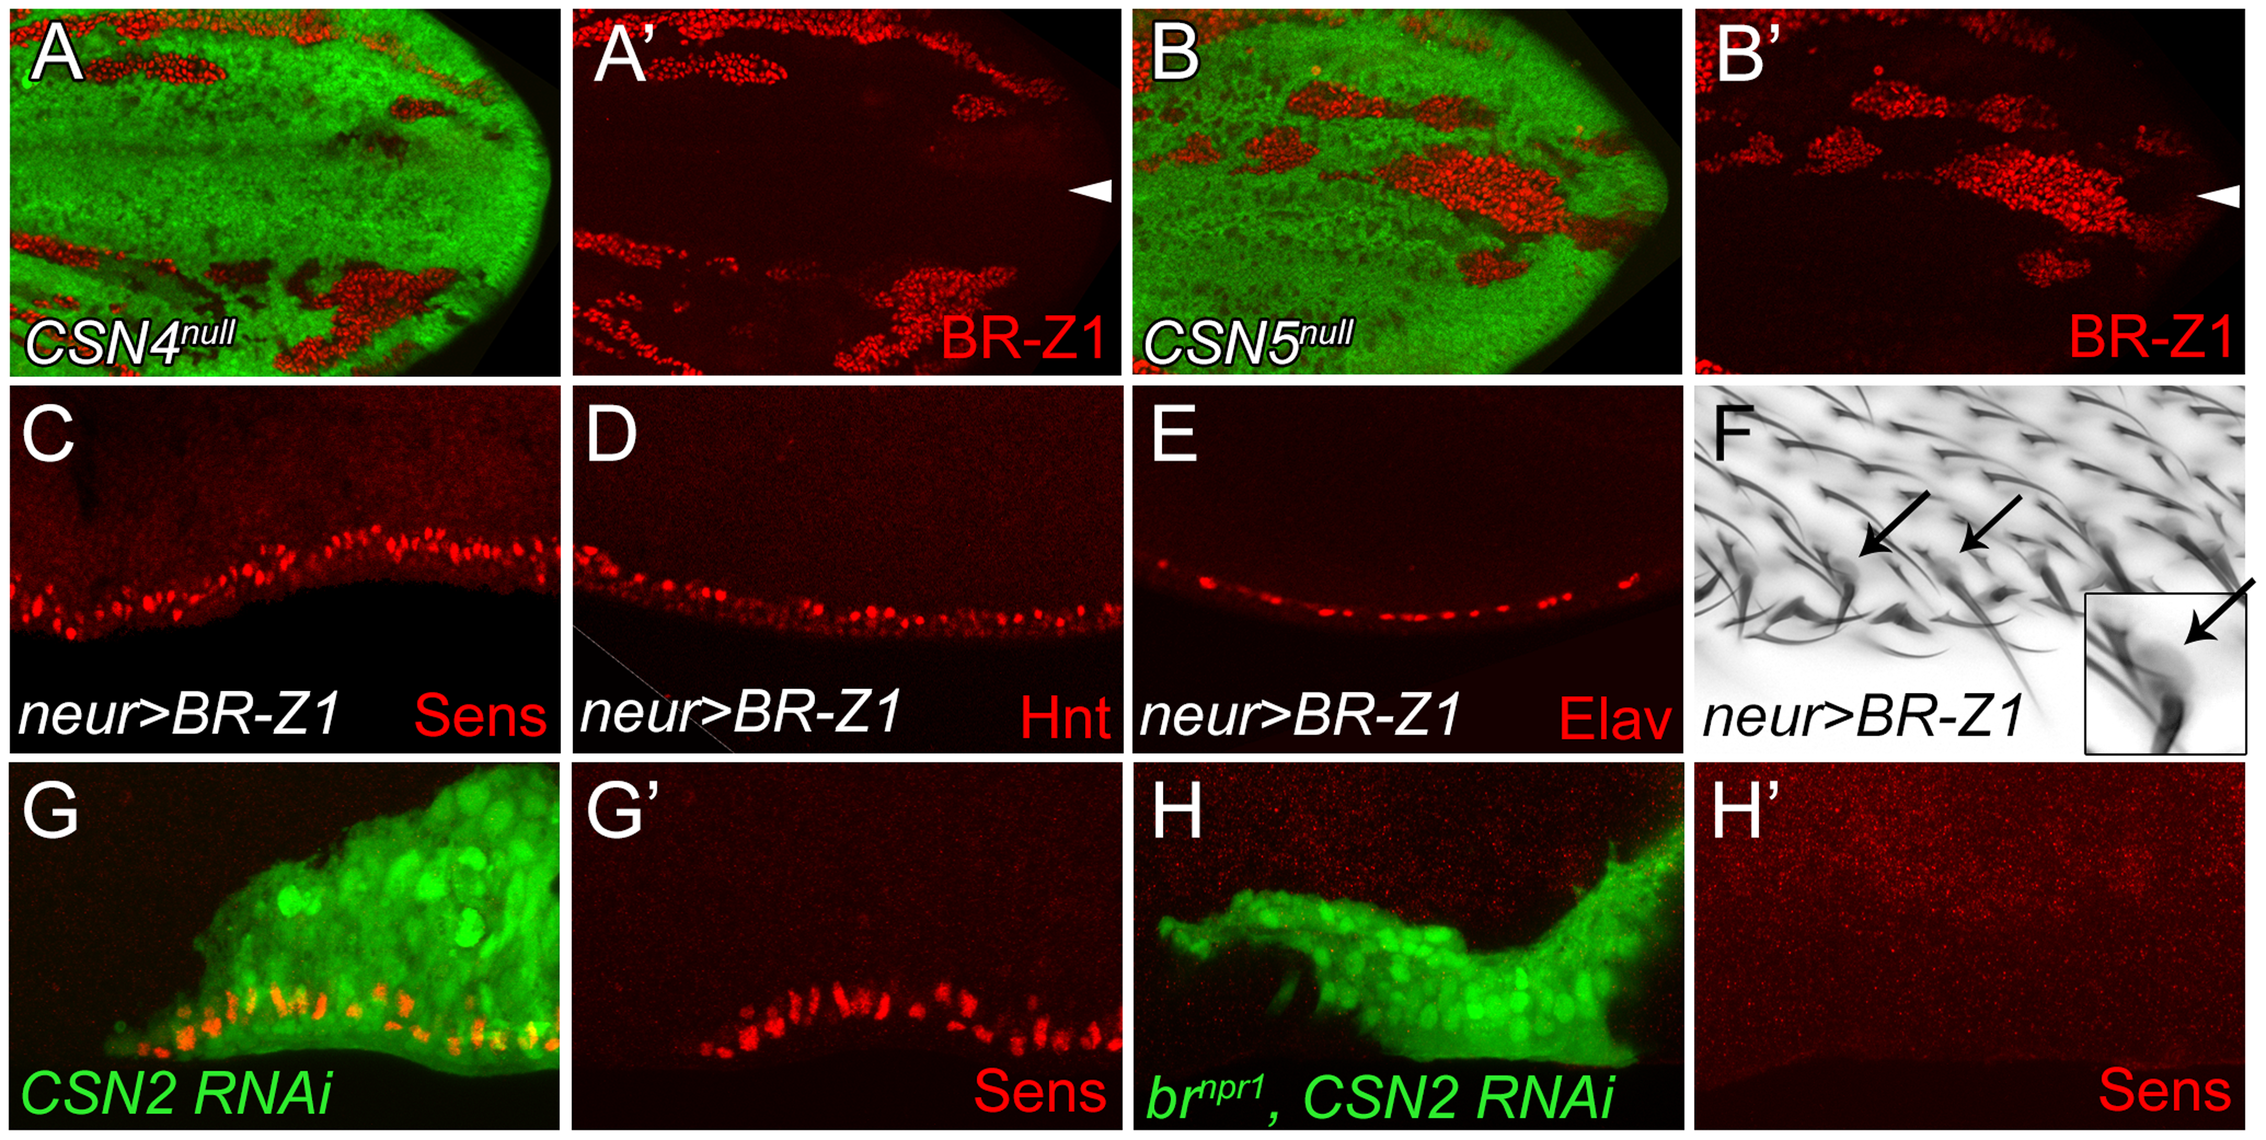 BR-Z1 upregulation is required for Sens upregulation at the PWM of <i>CSN</i> mutants.